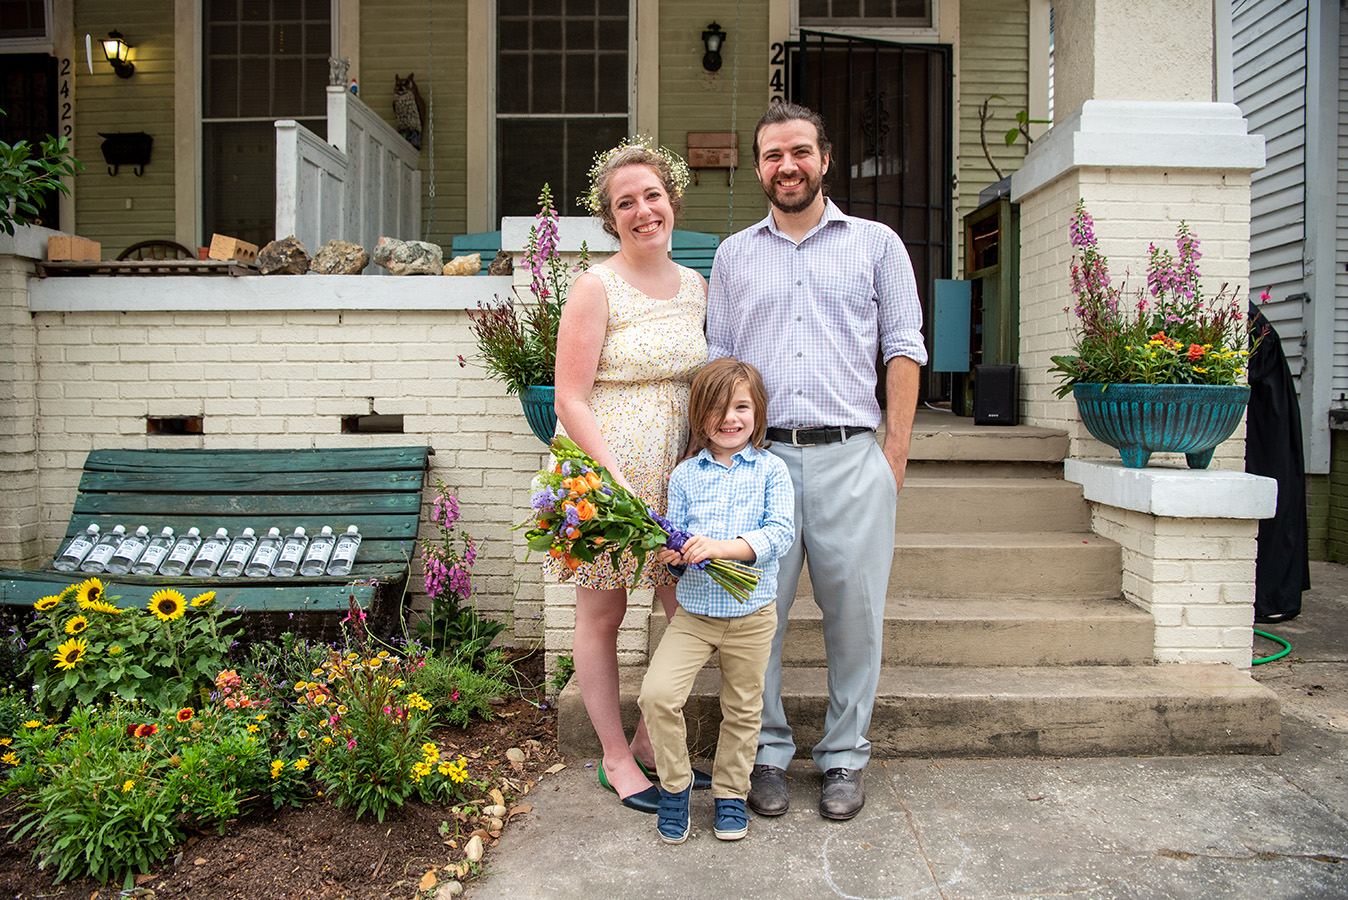 After the ceremony, the newly weds pose for photos with their four-year-old son, Frank.